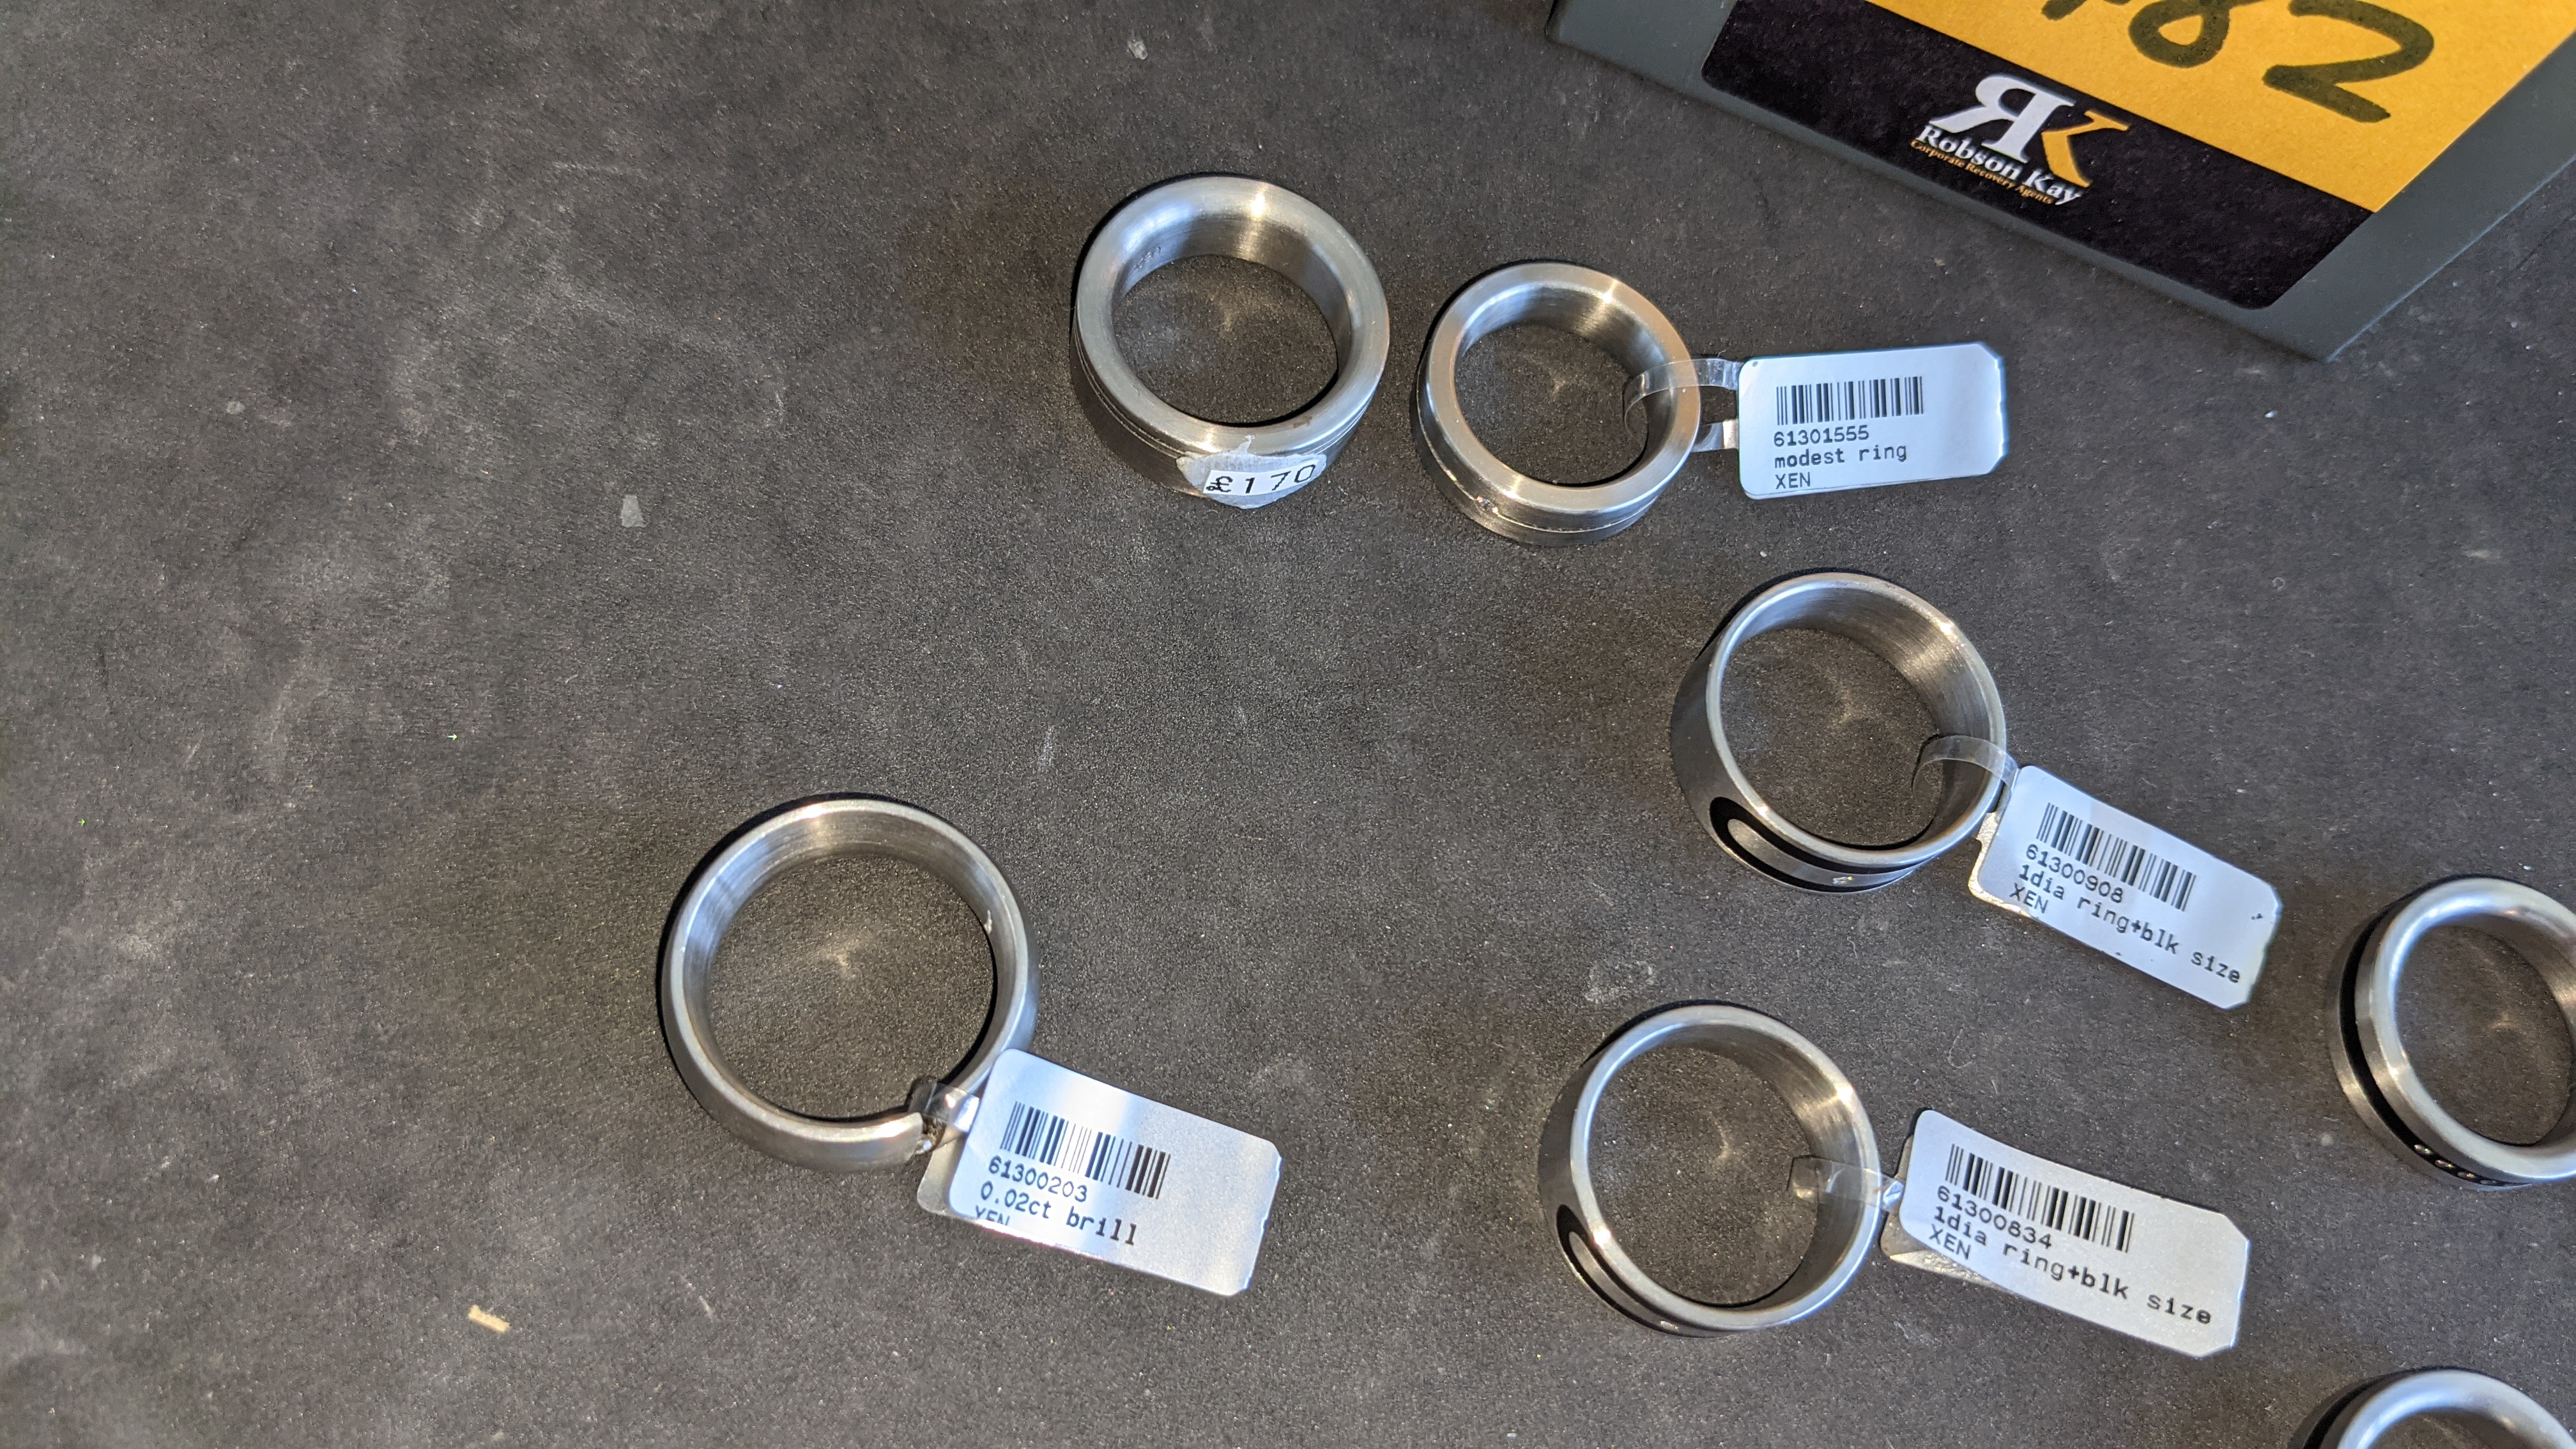 7 off assorted stainless steel & diamond rings. RRPs from £110 - £170. Total RRP £1,028 - Image 12 of 12